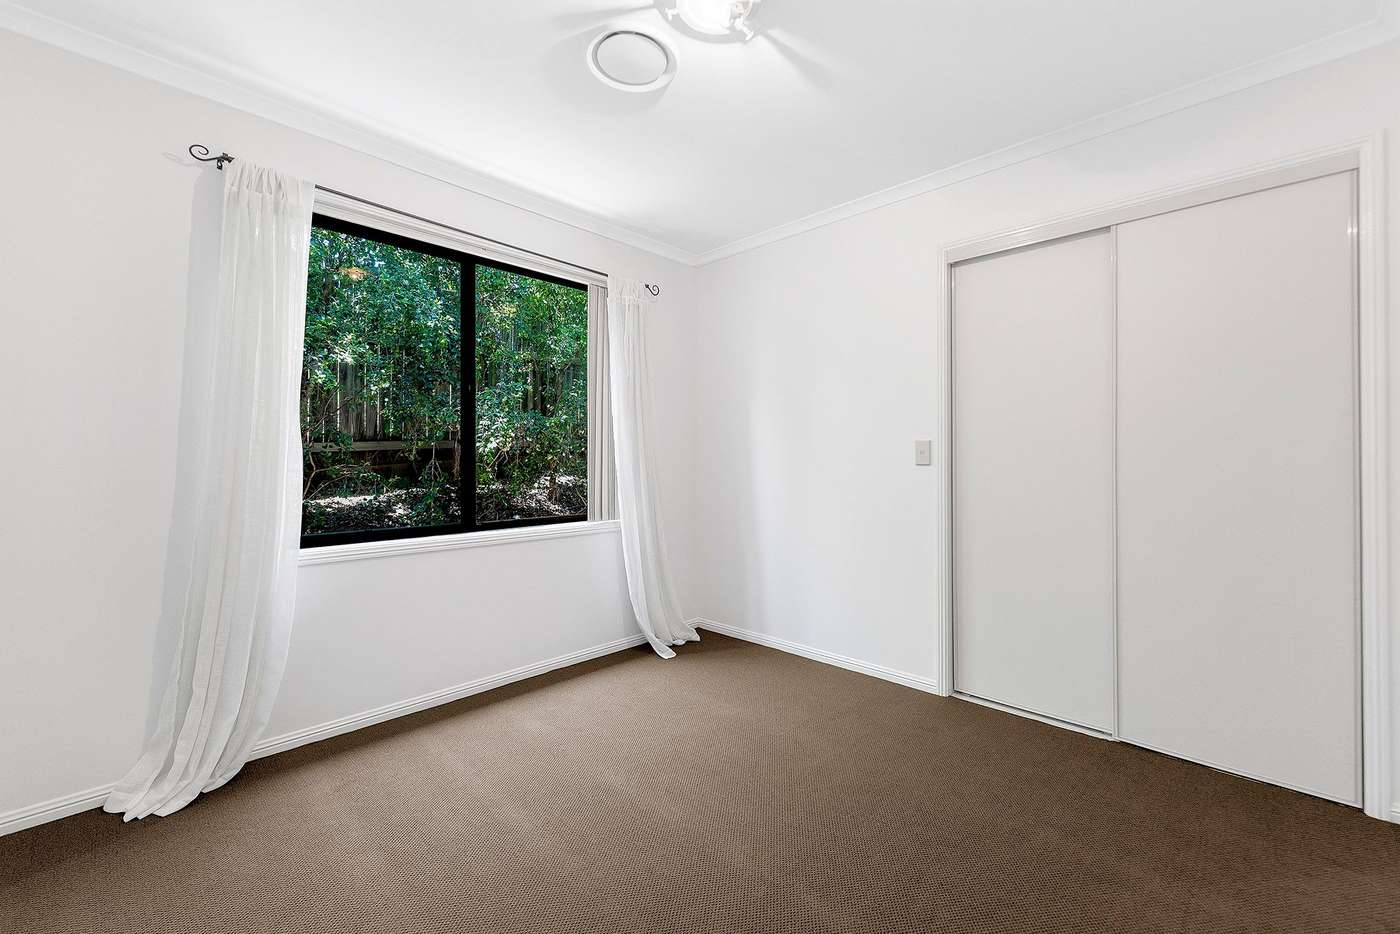 Seventh view of Homely house listing, 36 Huntingdale Crescent, Robina QLD 4226